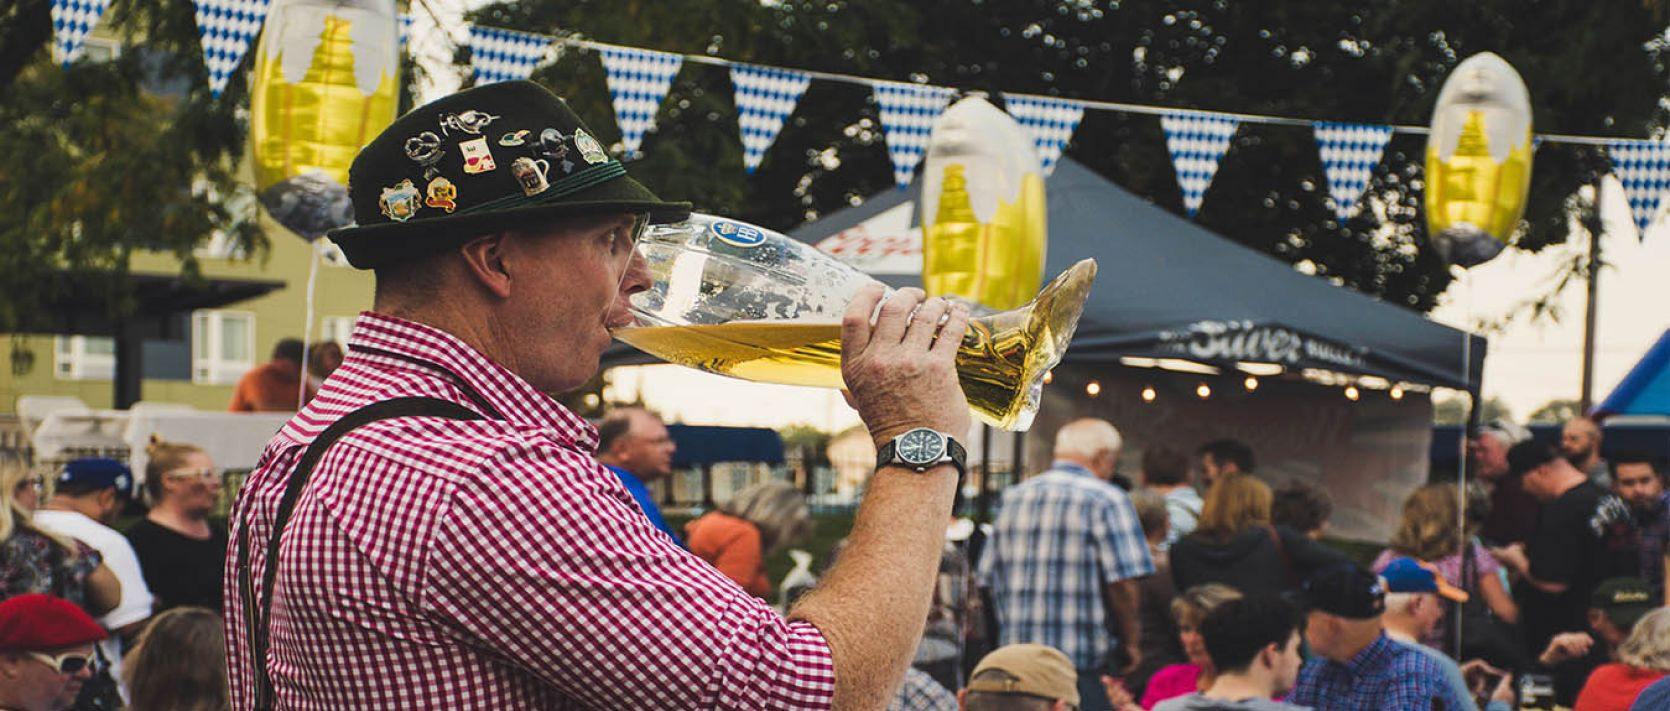 Photo for: Top Beer Festivals of the United States